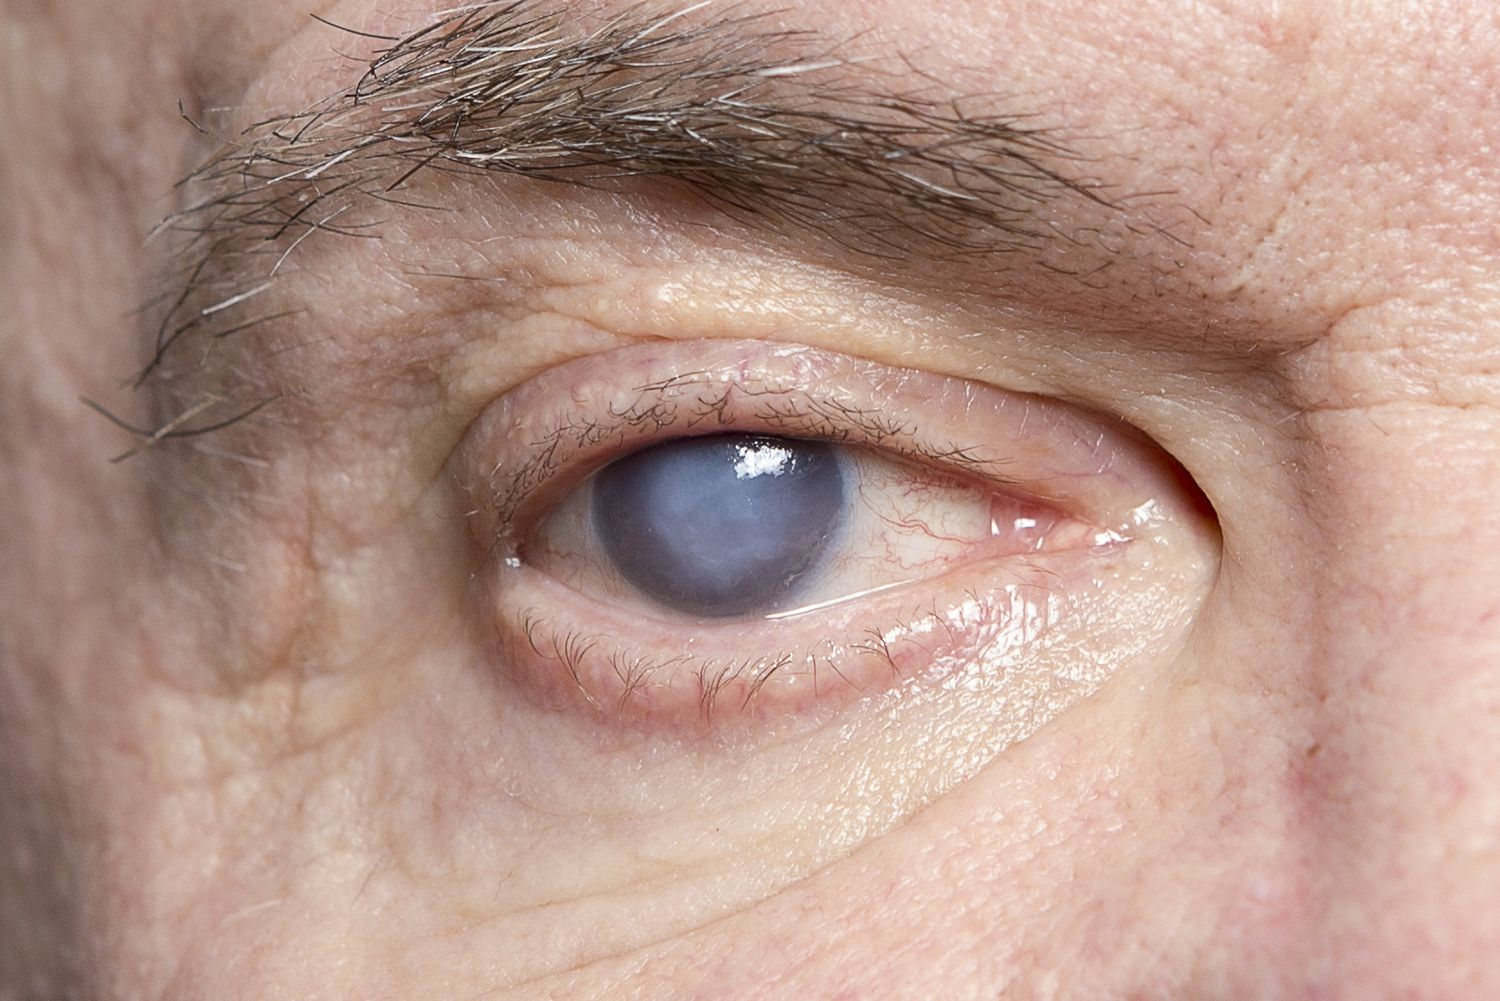 Clouded right eye of elderly man shows signs of cataracts